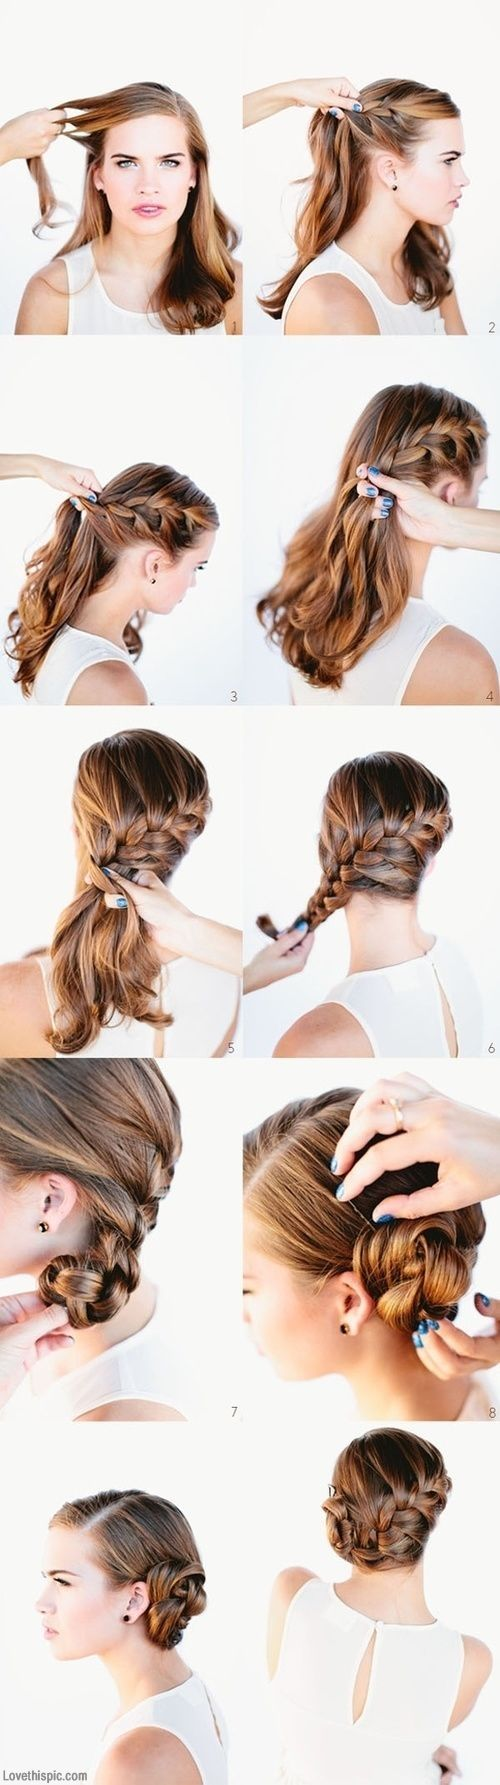 A sleek, braid-filled up-do. Step-by-step images so you can DIY. Walgreens.com has everything you need for the hair that you want.